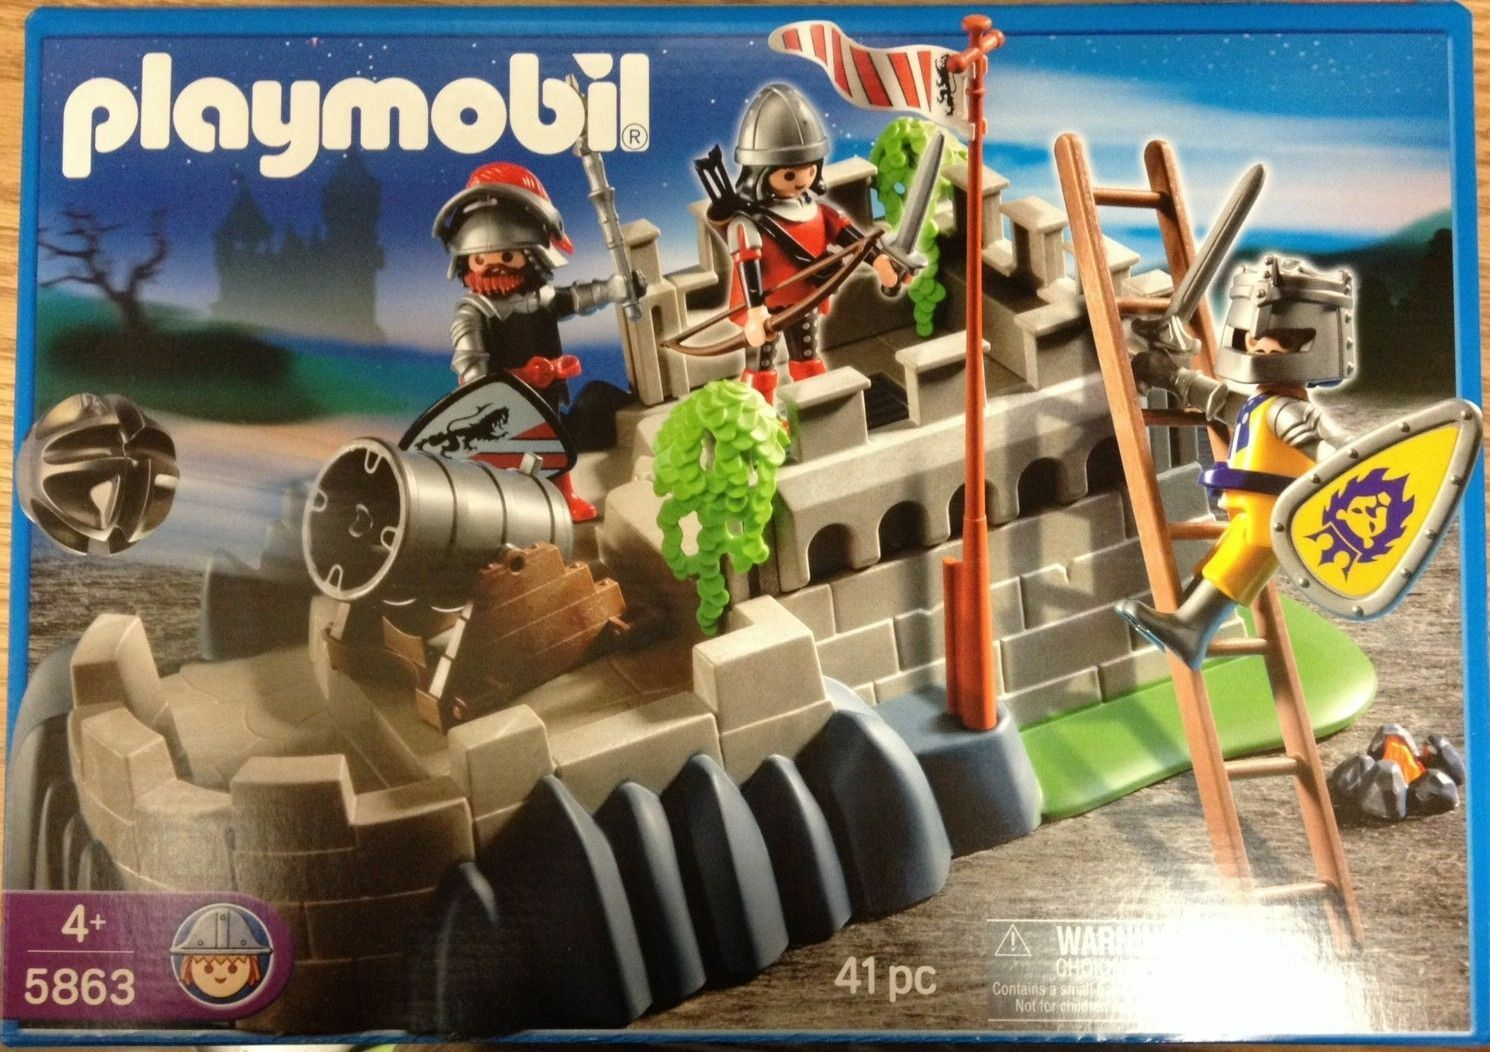 Playmobil 5863 Knights Castle Lion Cannon Fort